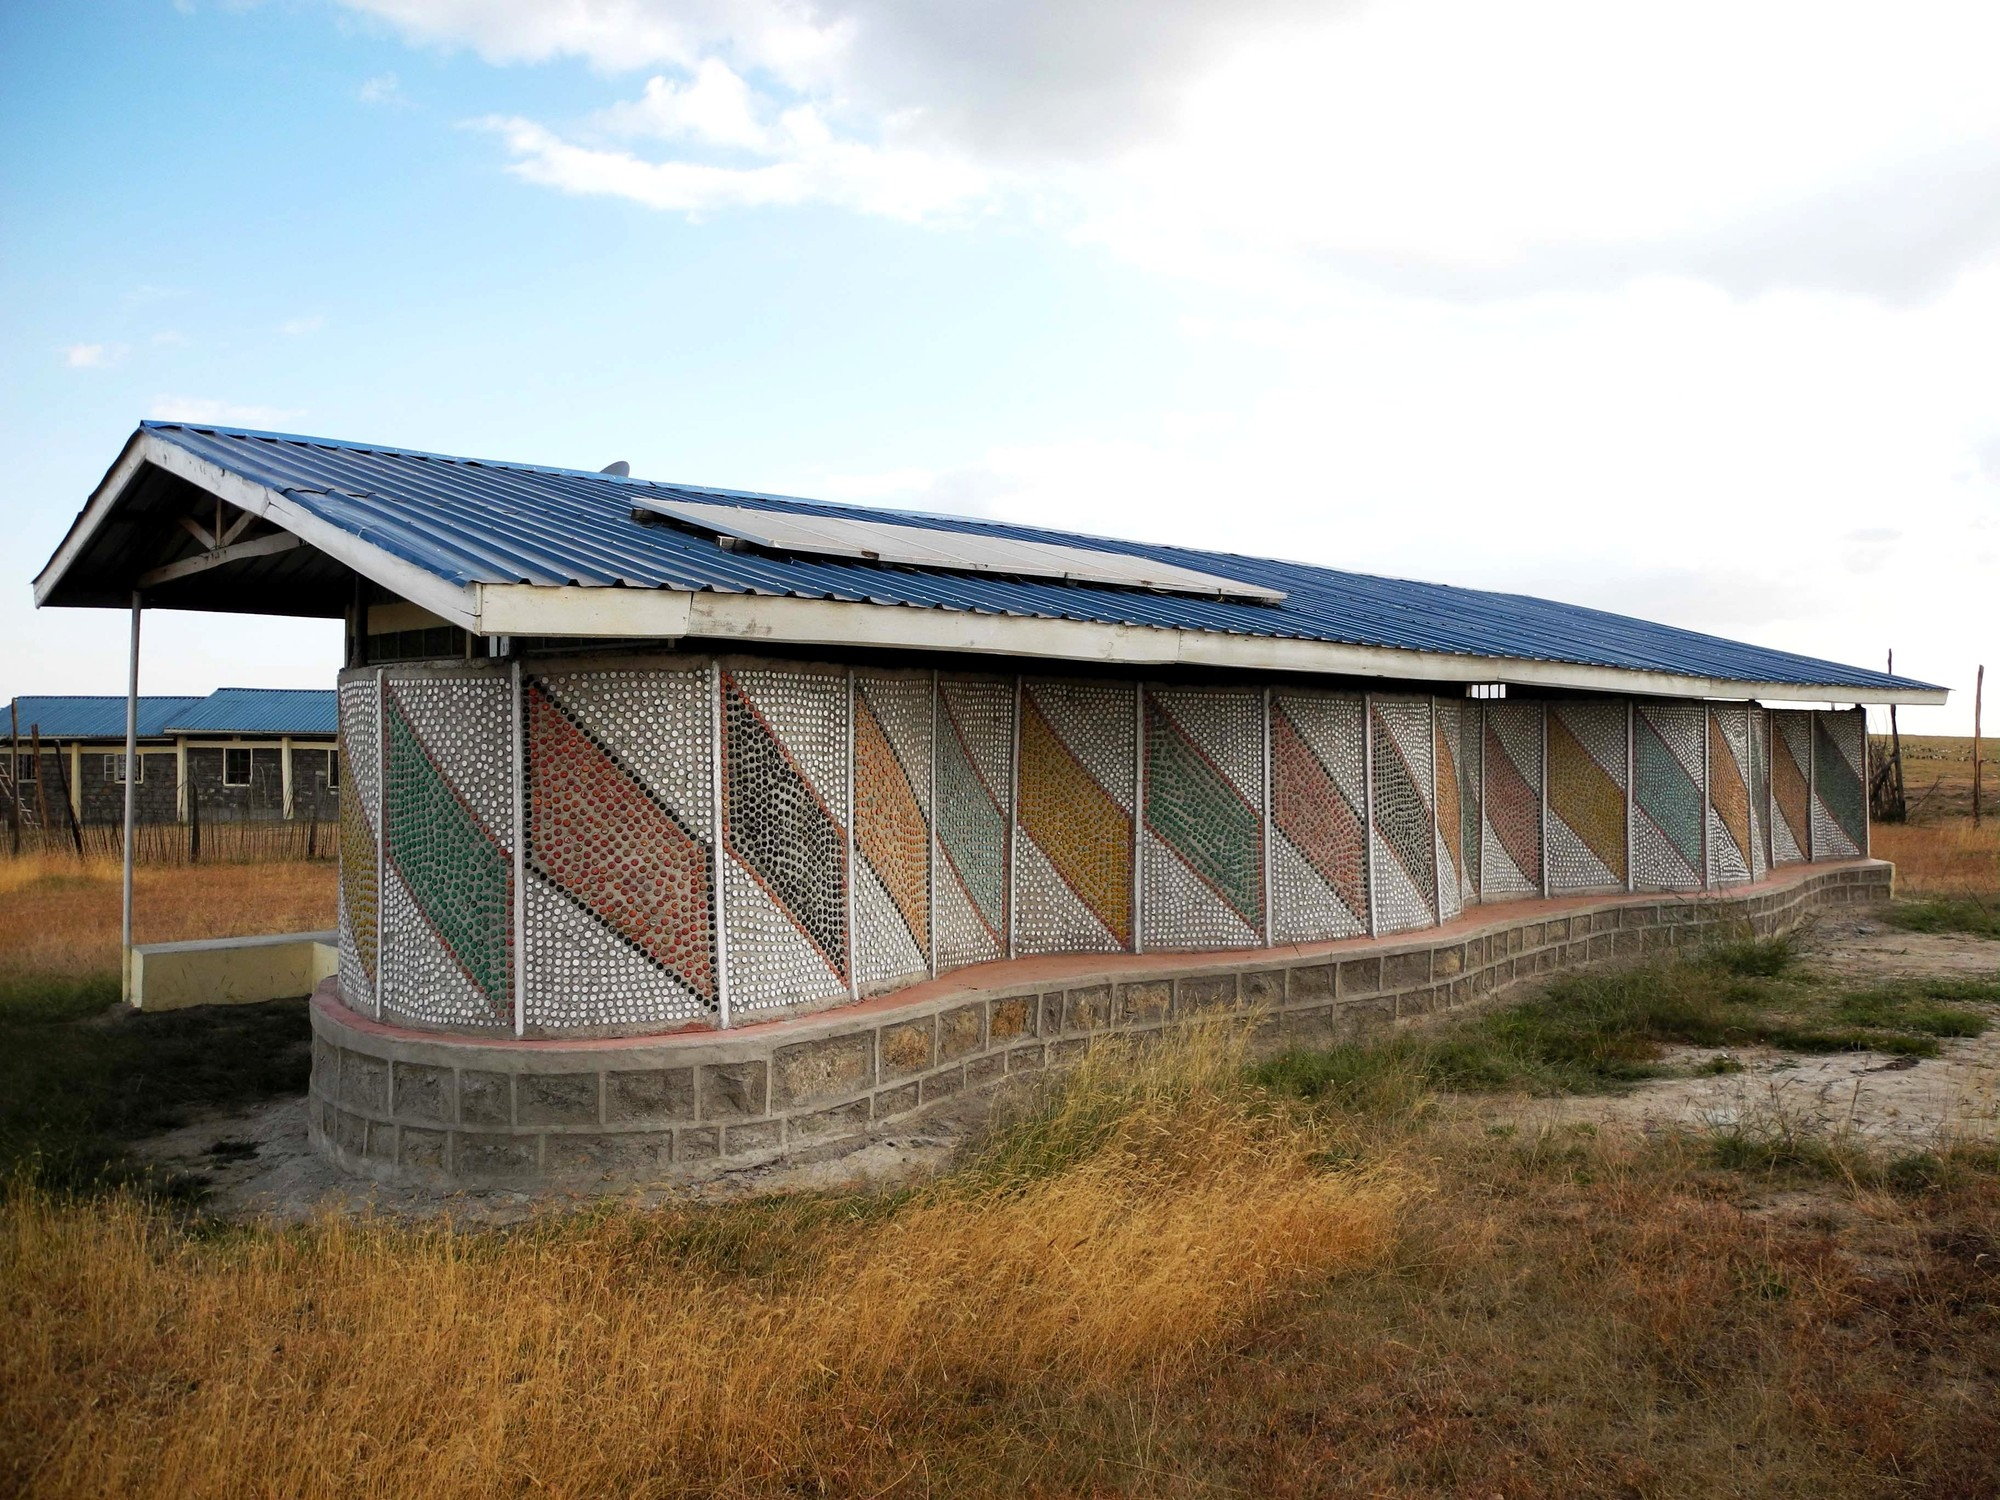 A sustainable Learning Center embellished with thousands of bottle caps in Africa should be considered sustainable despite its rural location. Image Courtesy of Charles Newman of Afritekt